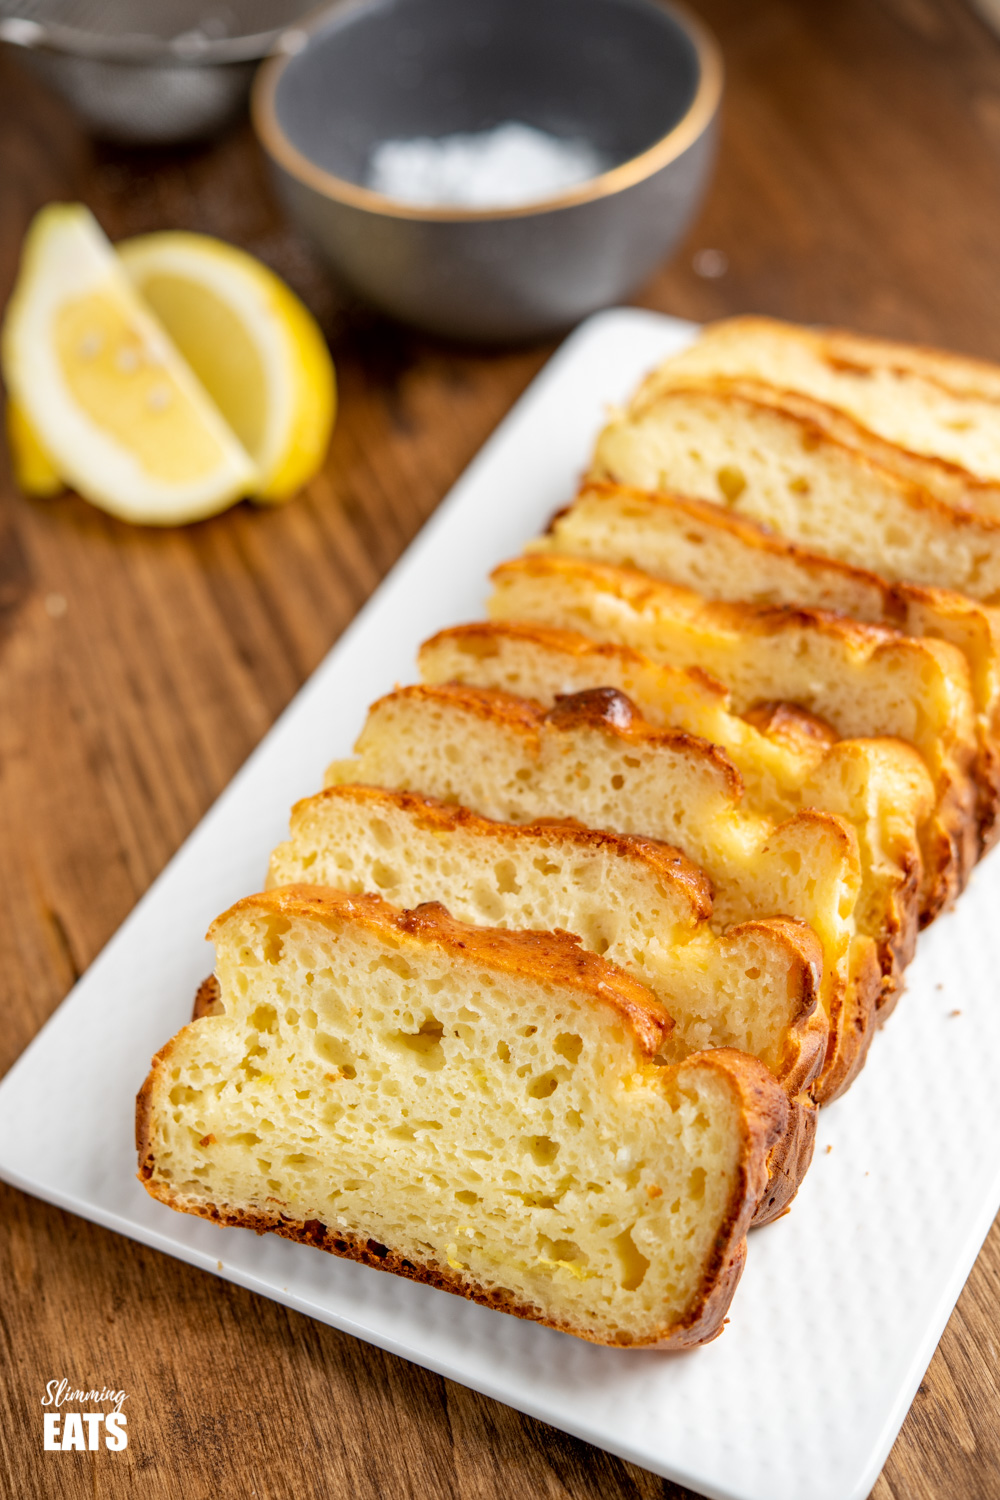 sliced lemon ricotta loaf on white plate with lemon slices in background